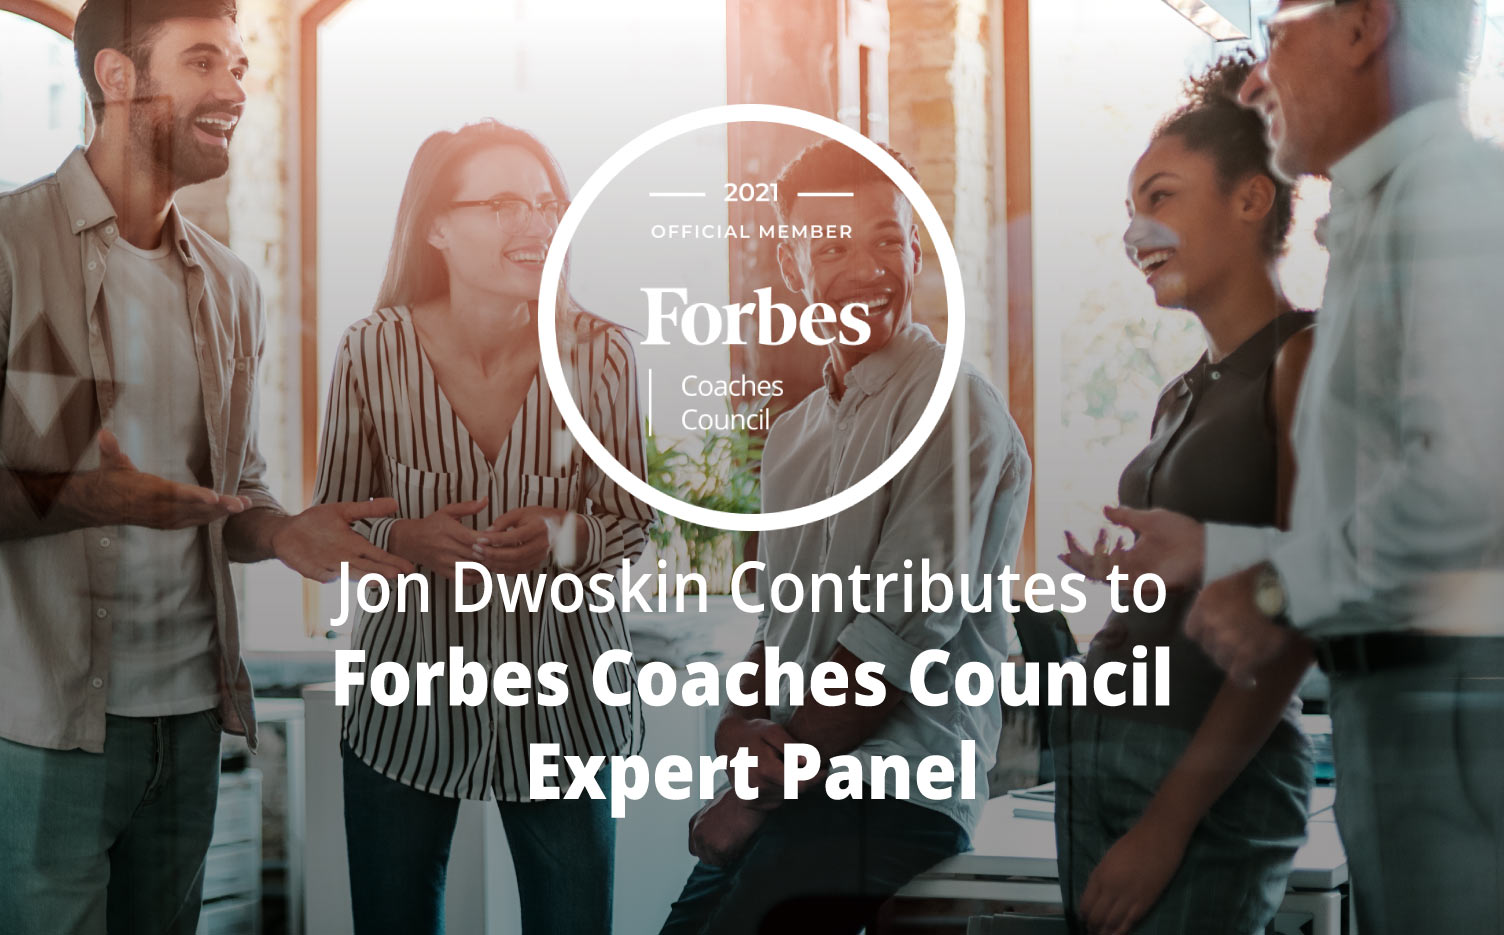 Jon Dwoskin Contributes to Forbes Coaches Council Expert Panel: 14 Strategies To Keep A Growing Startup's 'A-Players' On Board